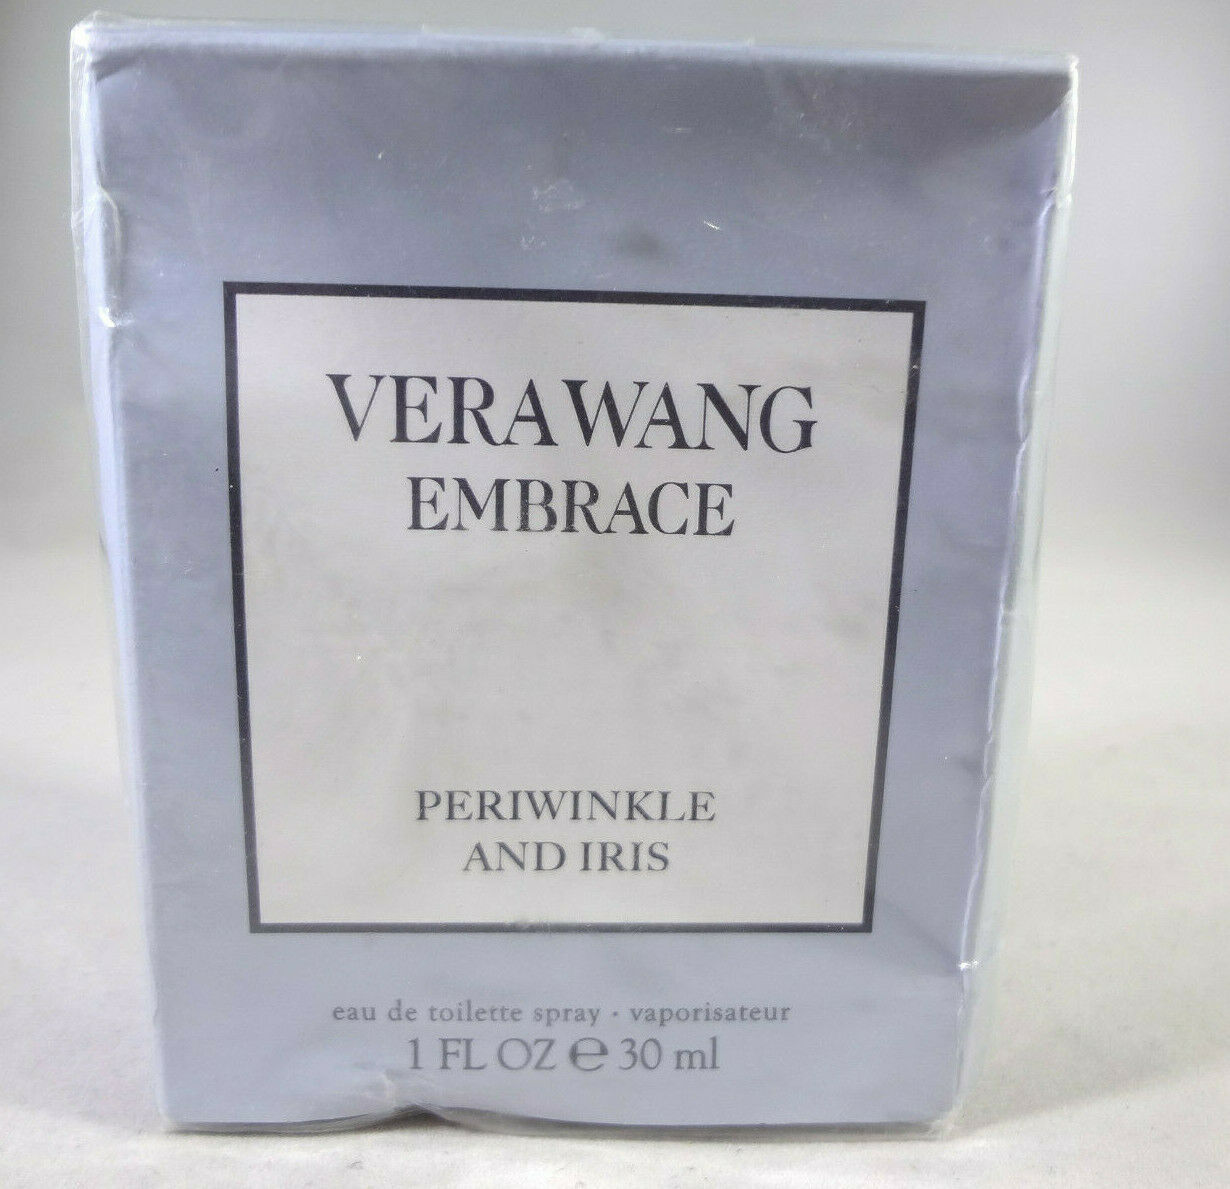 Primary image for Vera Wang Embrace Periwinkle and Iris Eau de Toilette Spray 30ml / 1oz {HB-V}